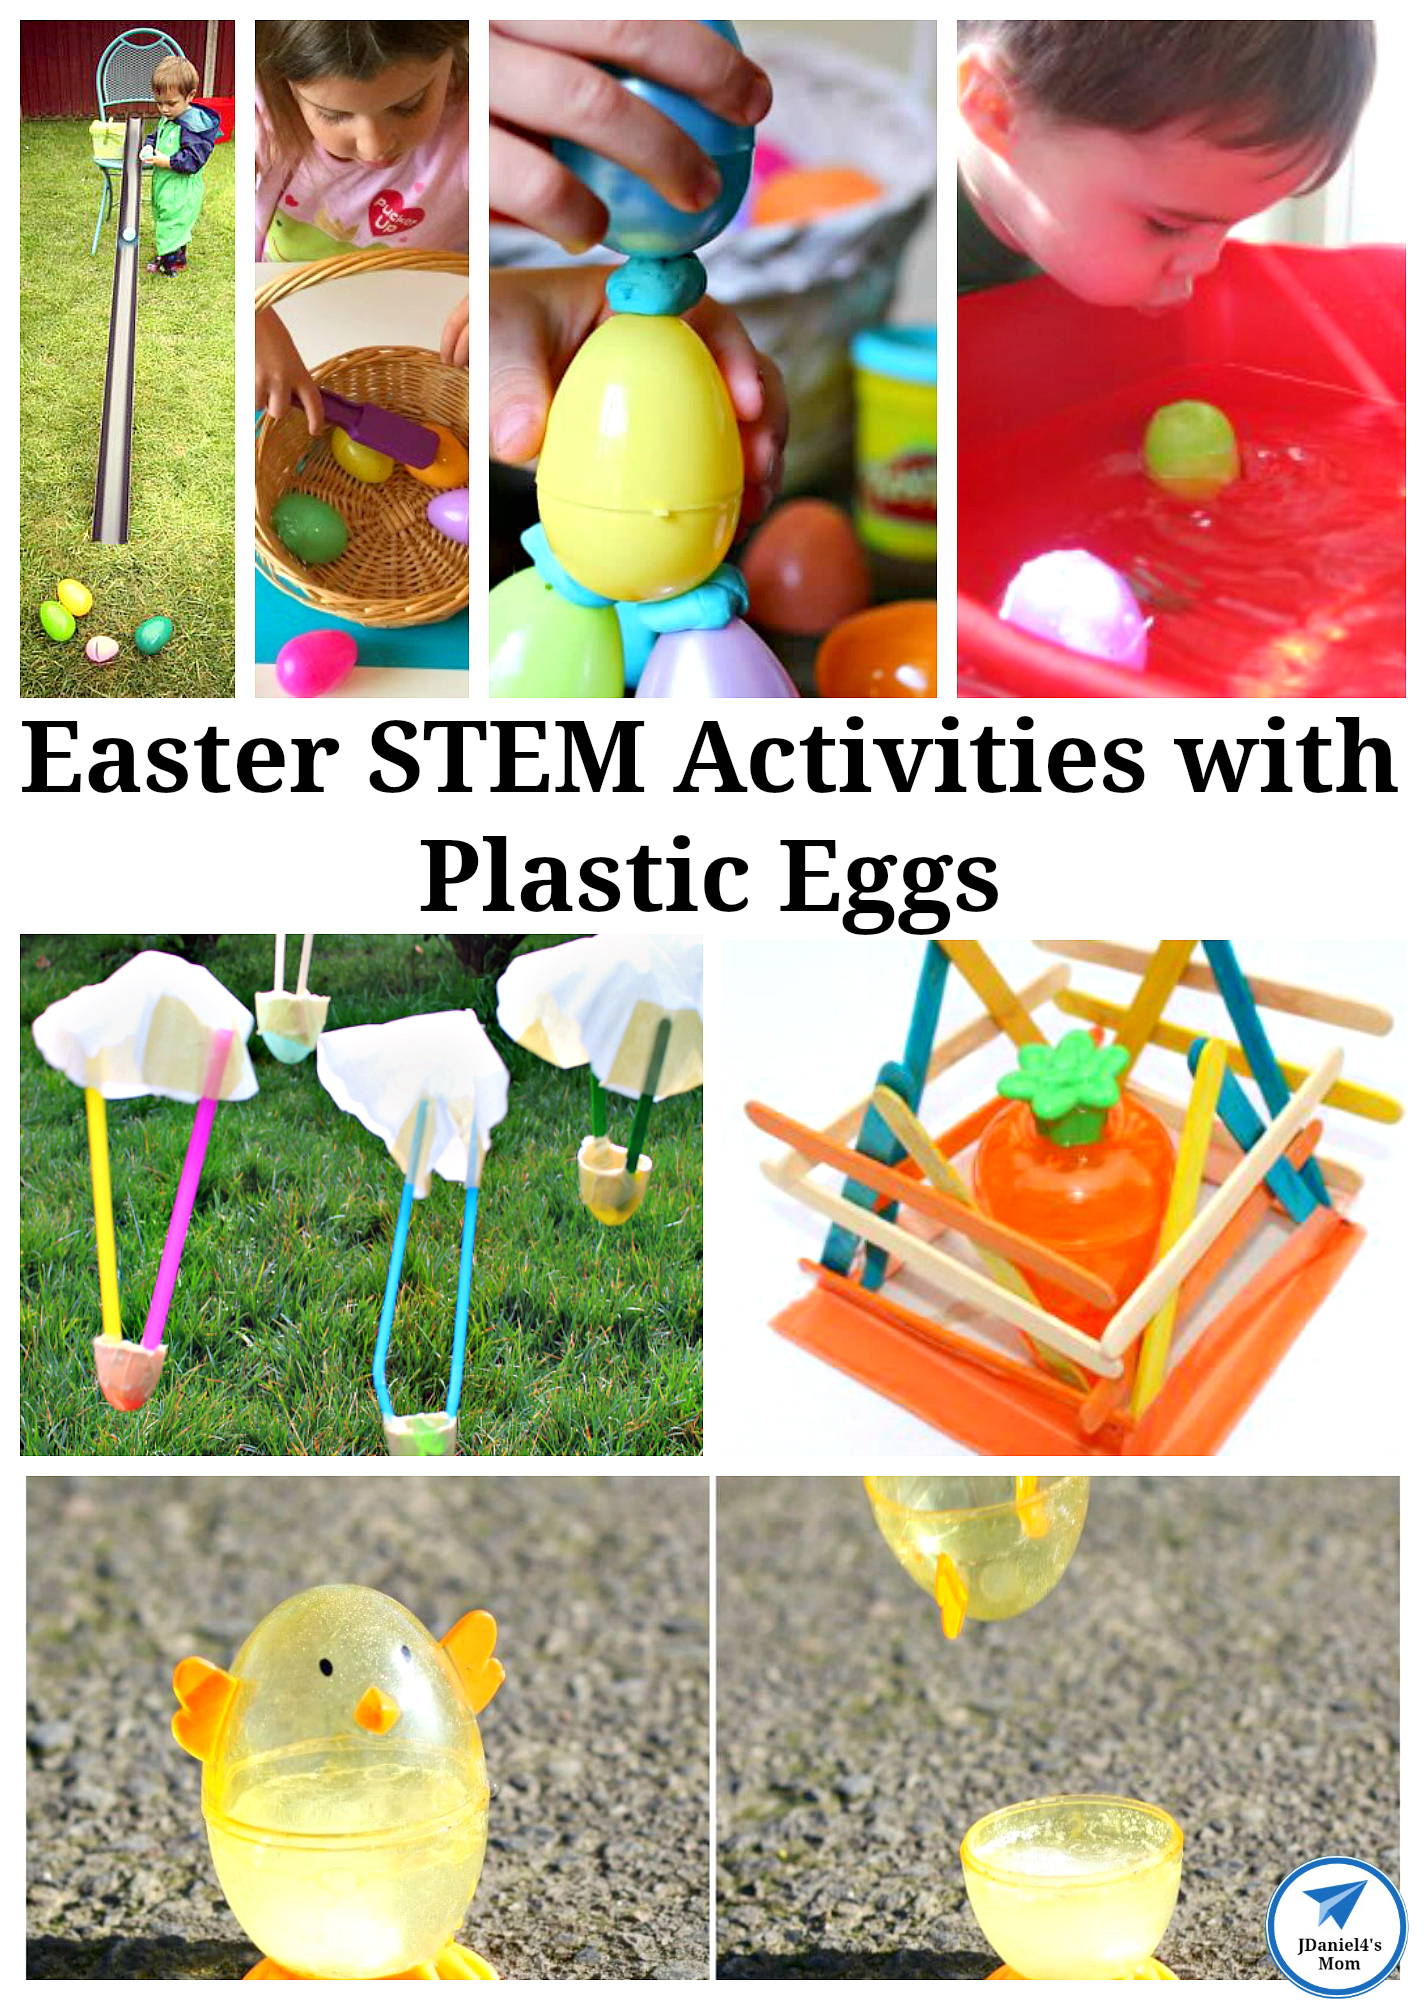 Your children will have fun exploring the Easter STEM activities with plastic eggs featured in this post.  #jdaniel4smom #plasticeggs #STEM #Easter